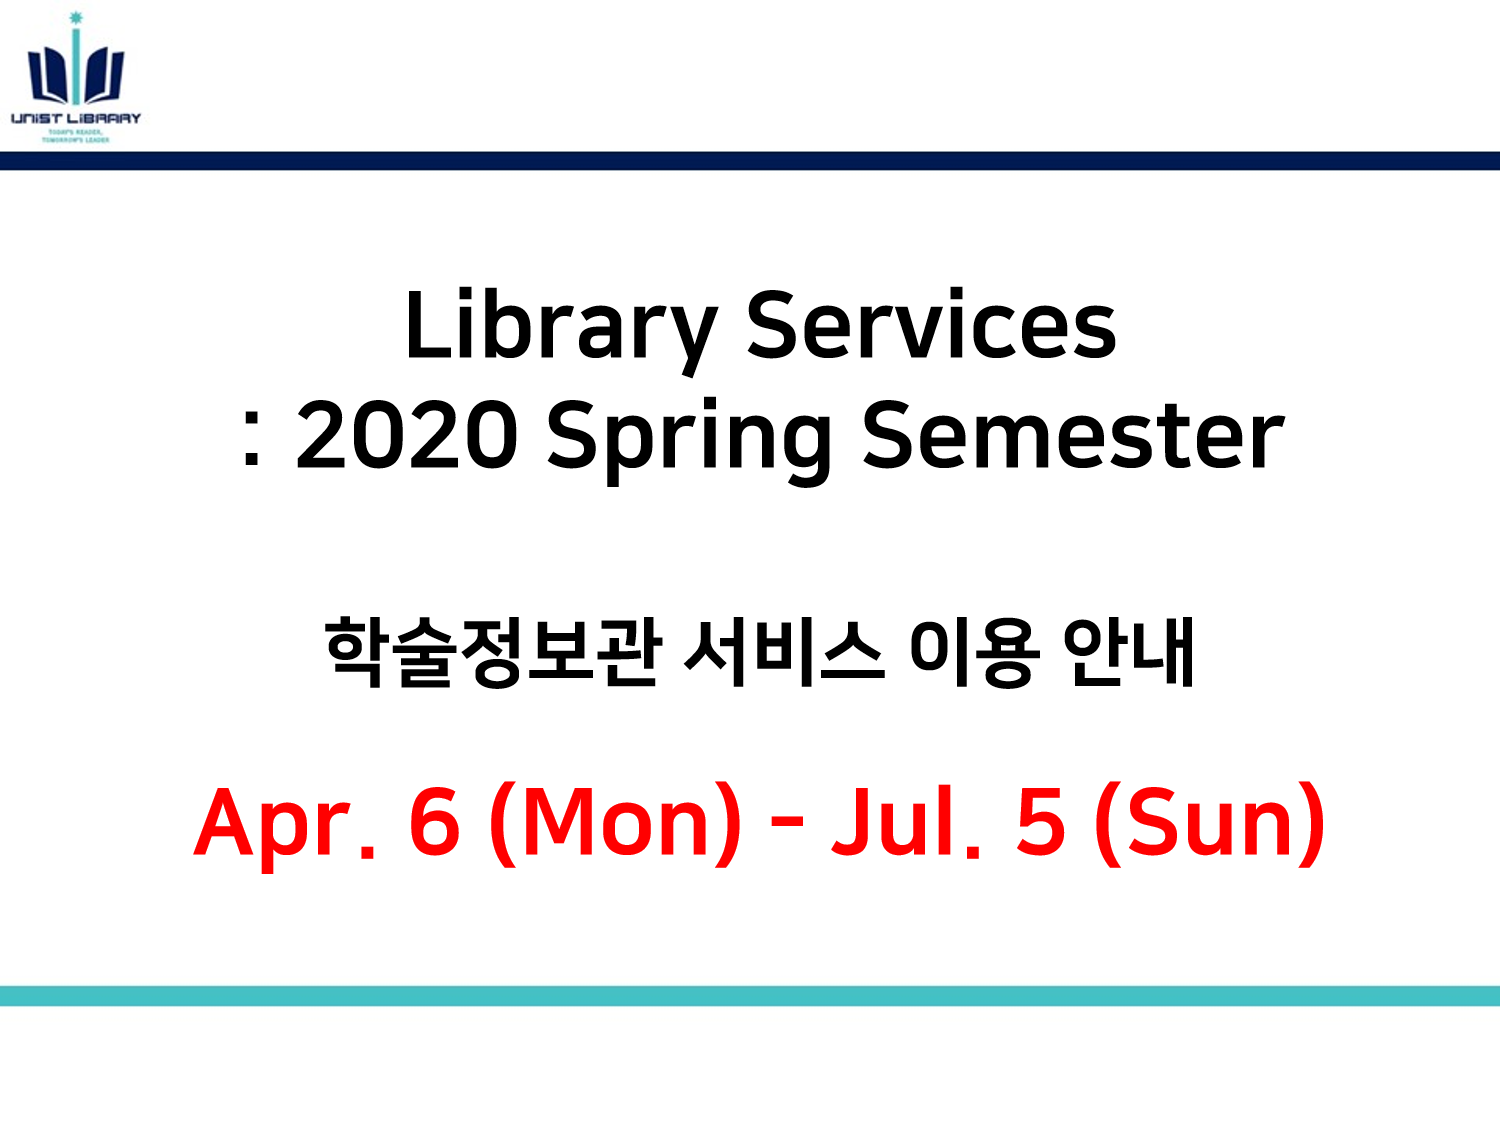 Library Services: 2020 Spring Semester (Apr. 6 - Jul. 5)